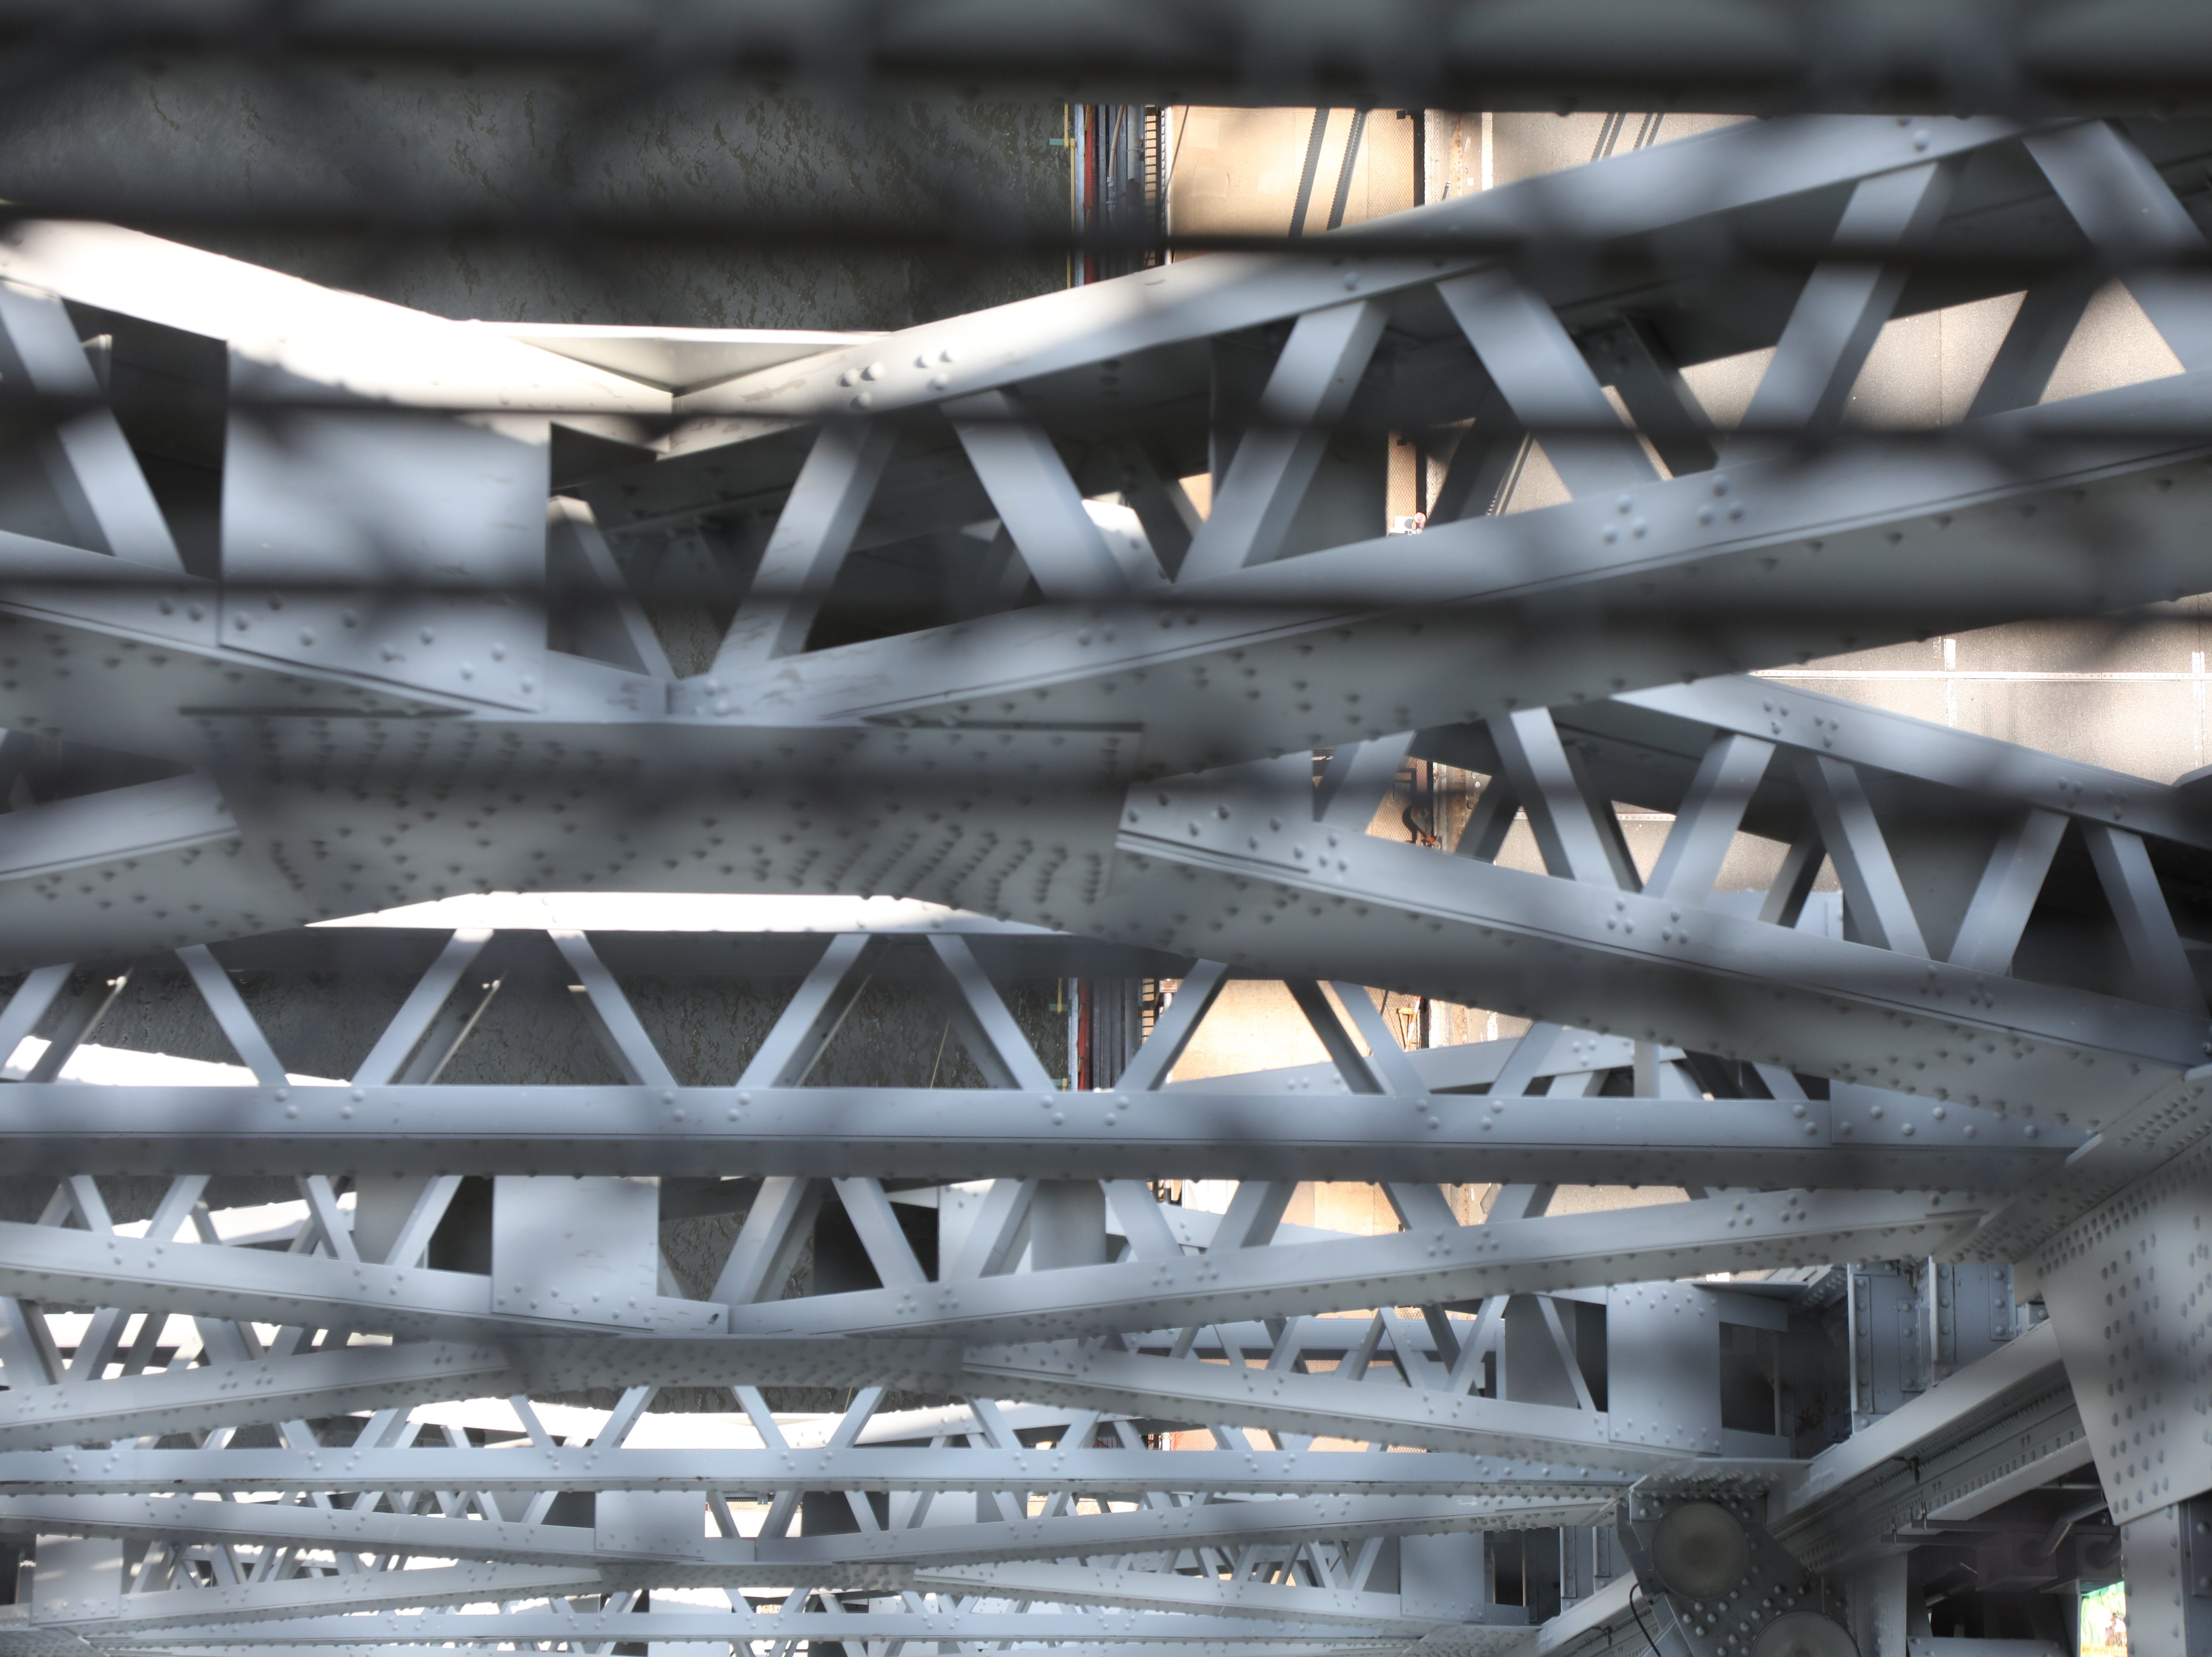 The looking down through the metal floor grates from the the west tower.